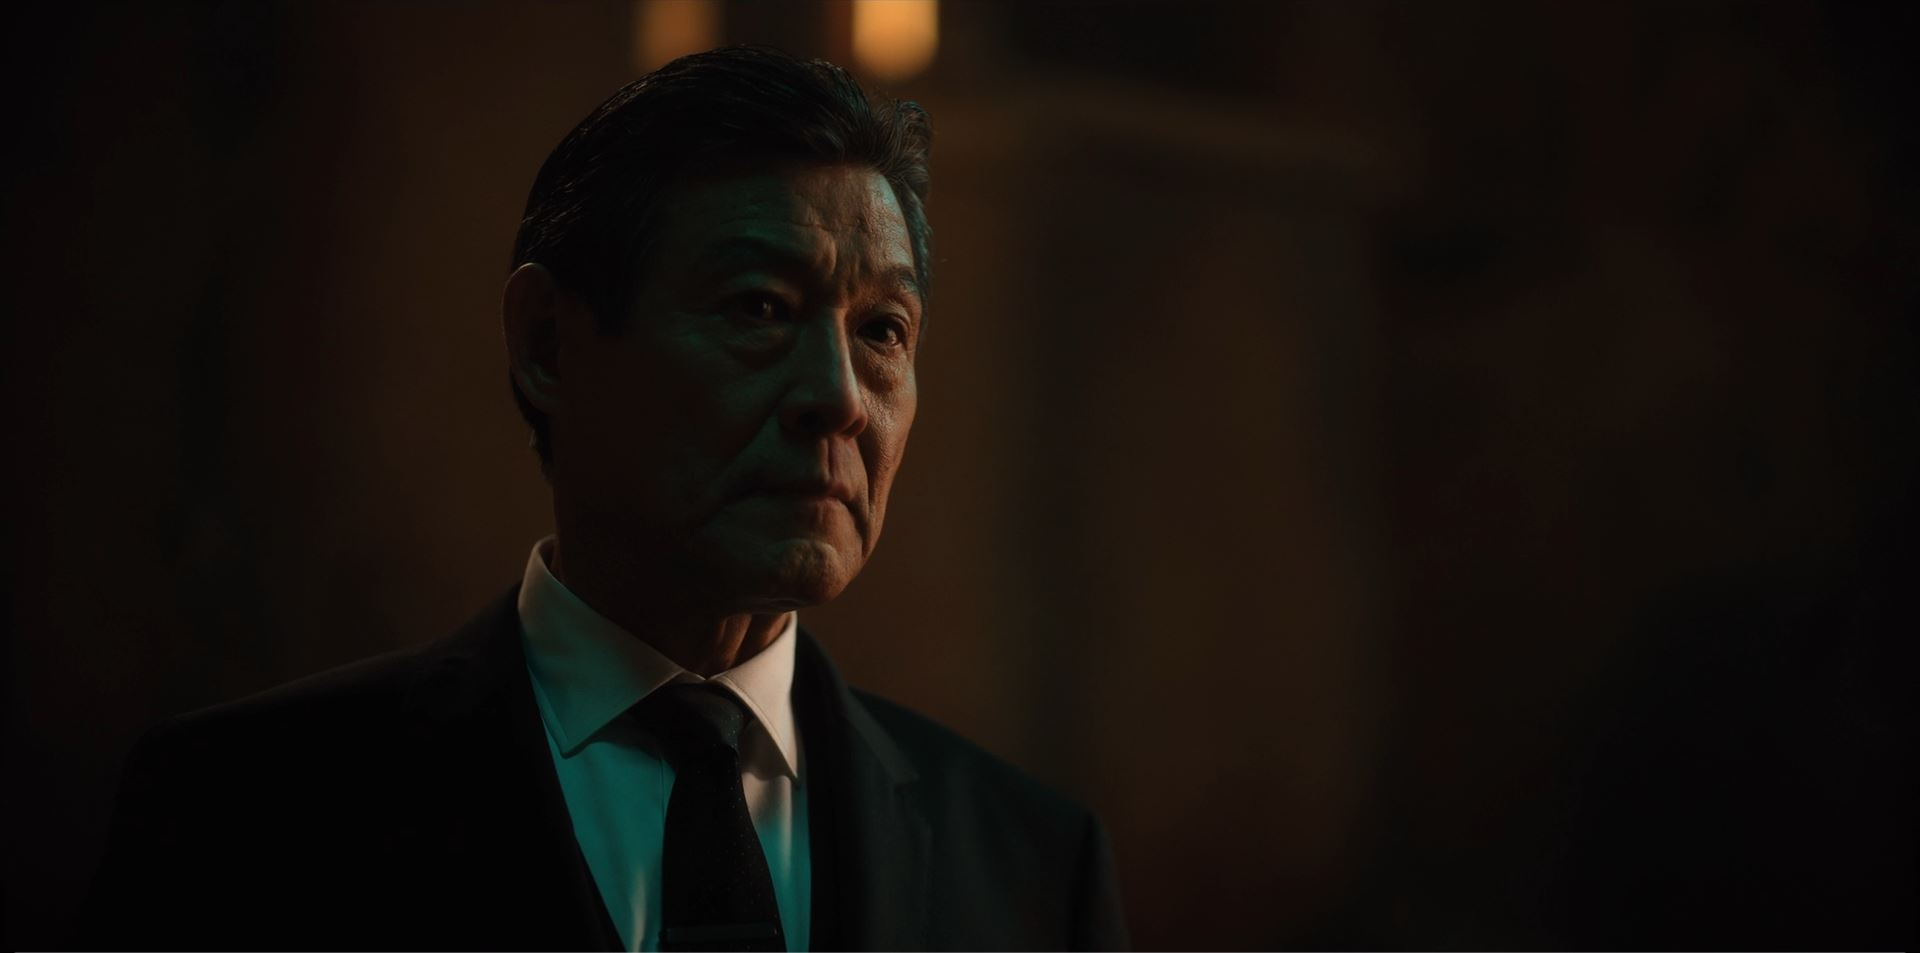 Altered Carbon Season 2 Review - Oyabun Hideko played by James Saito